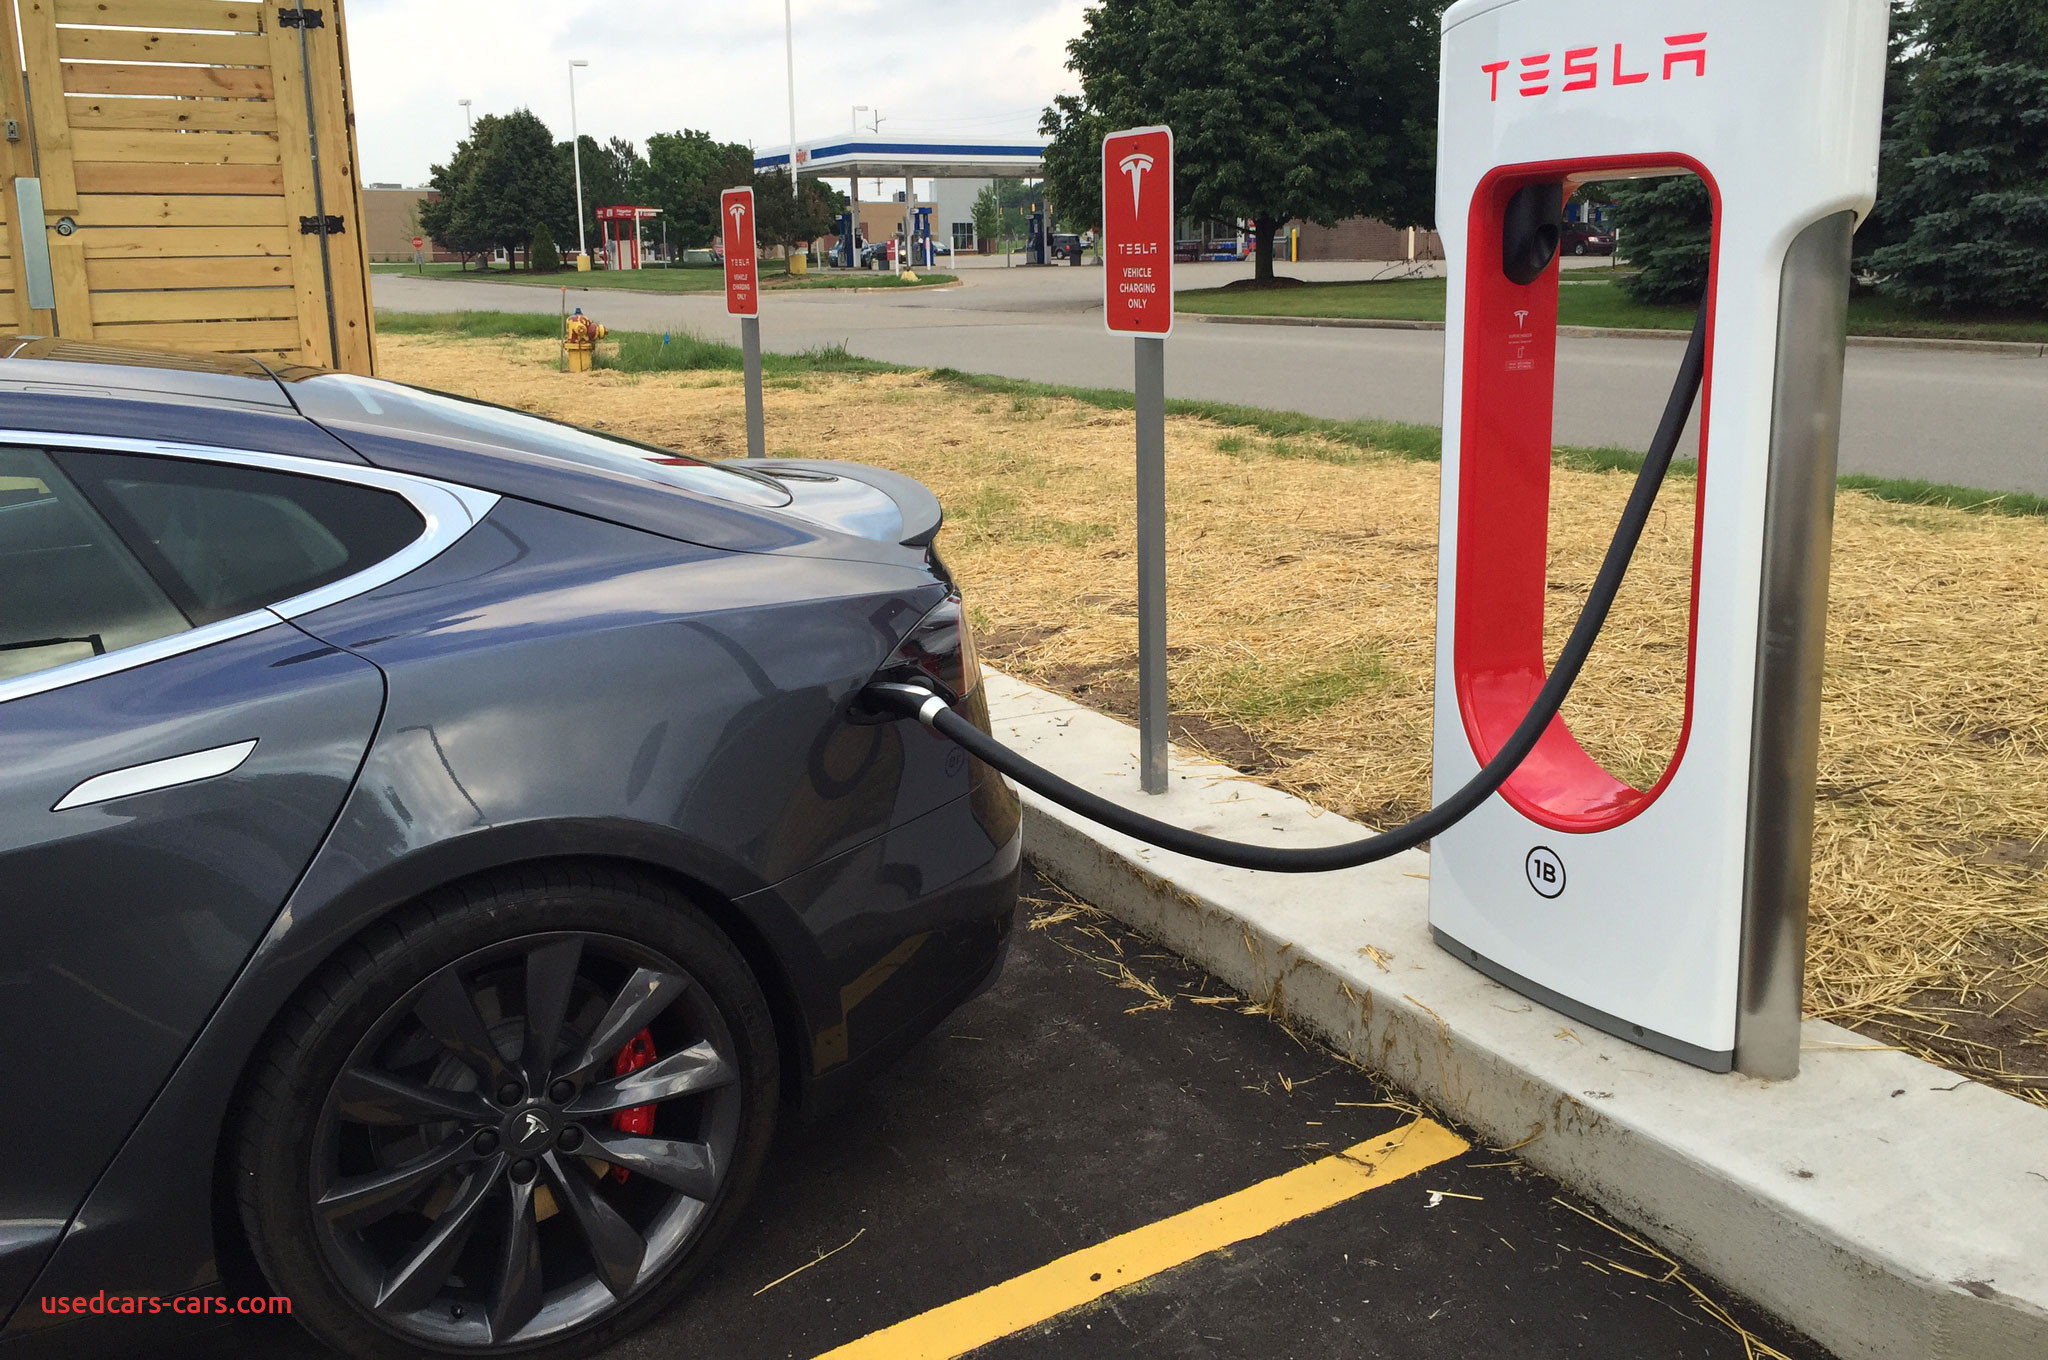 Is Tesla Supercharger Free Best Of Supercharging A Tesla Model S at A Grocery Store